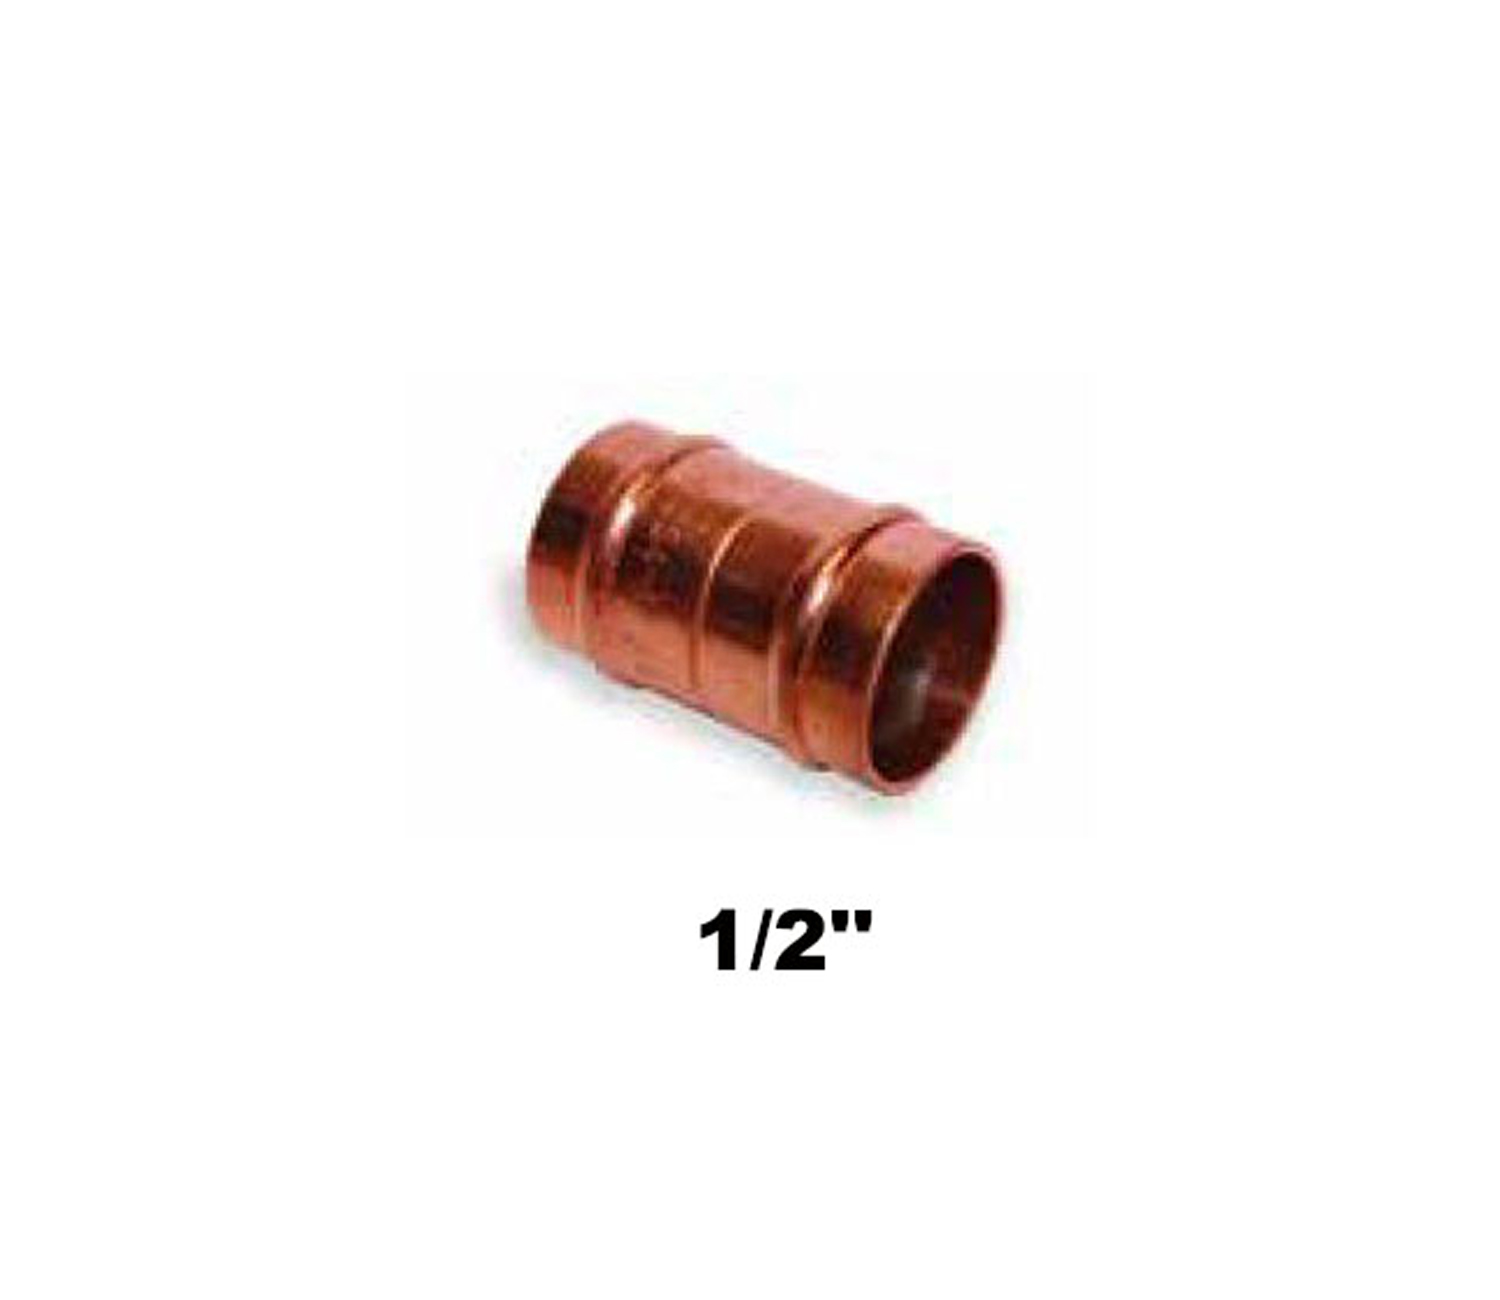 "Straight Compression Coupler C×C 1/2"" (10001)"